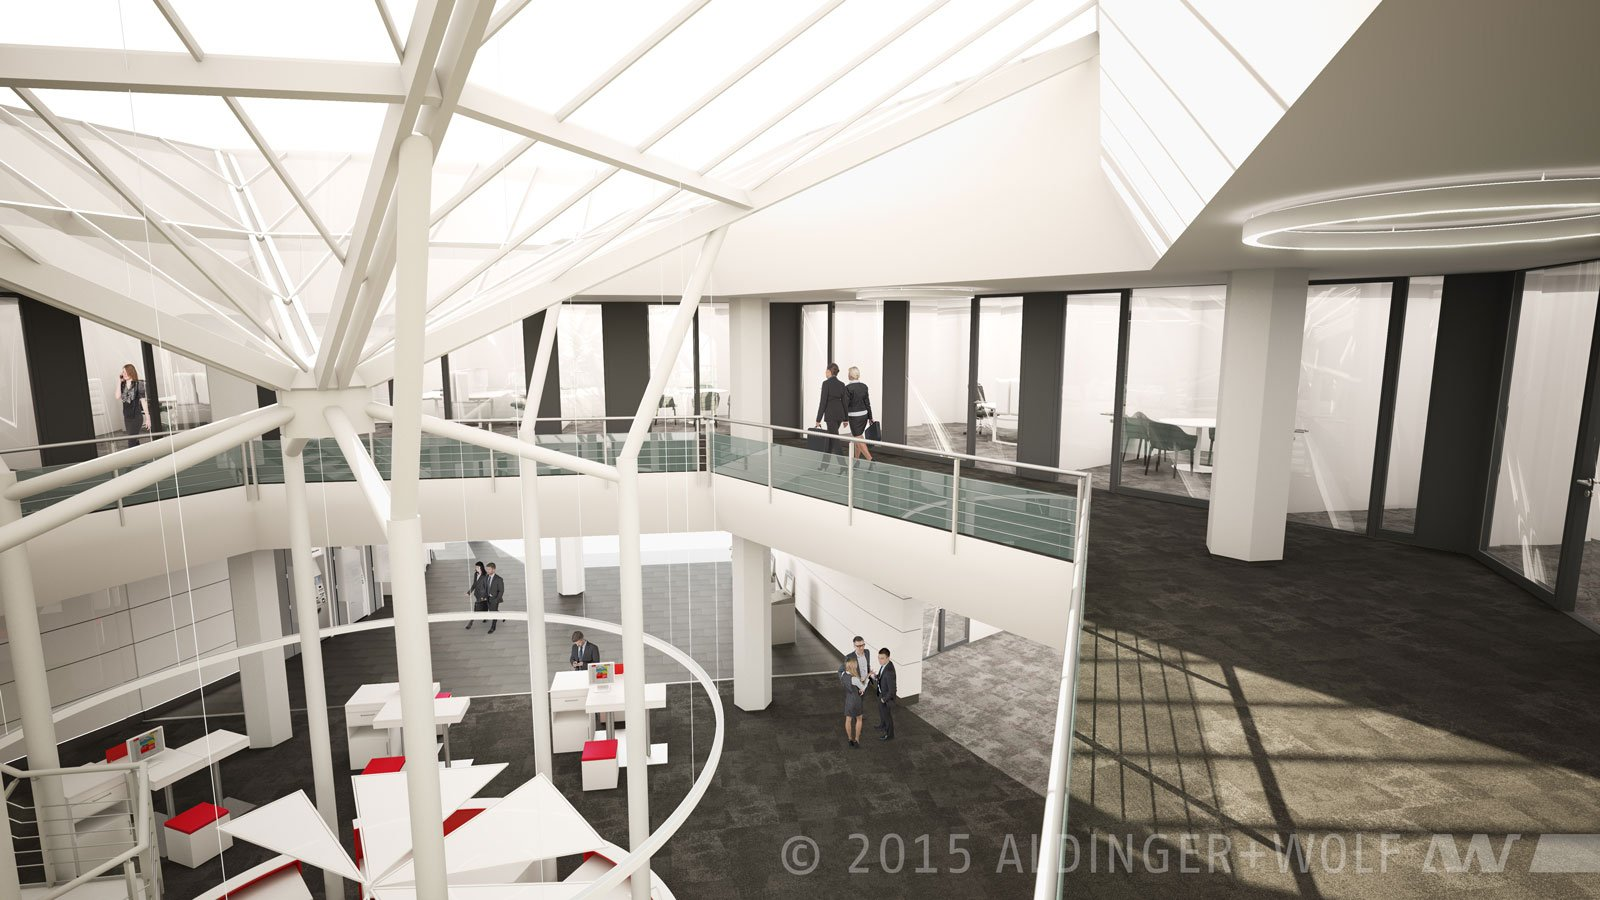 our #highres #renderings made the #coordination #process during the #conversion of the #sparkasse #Gießen way easier https://t.co/IzZAjMt7KS